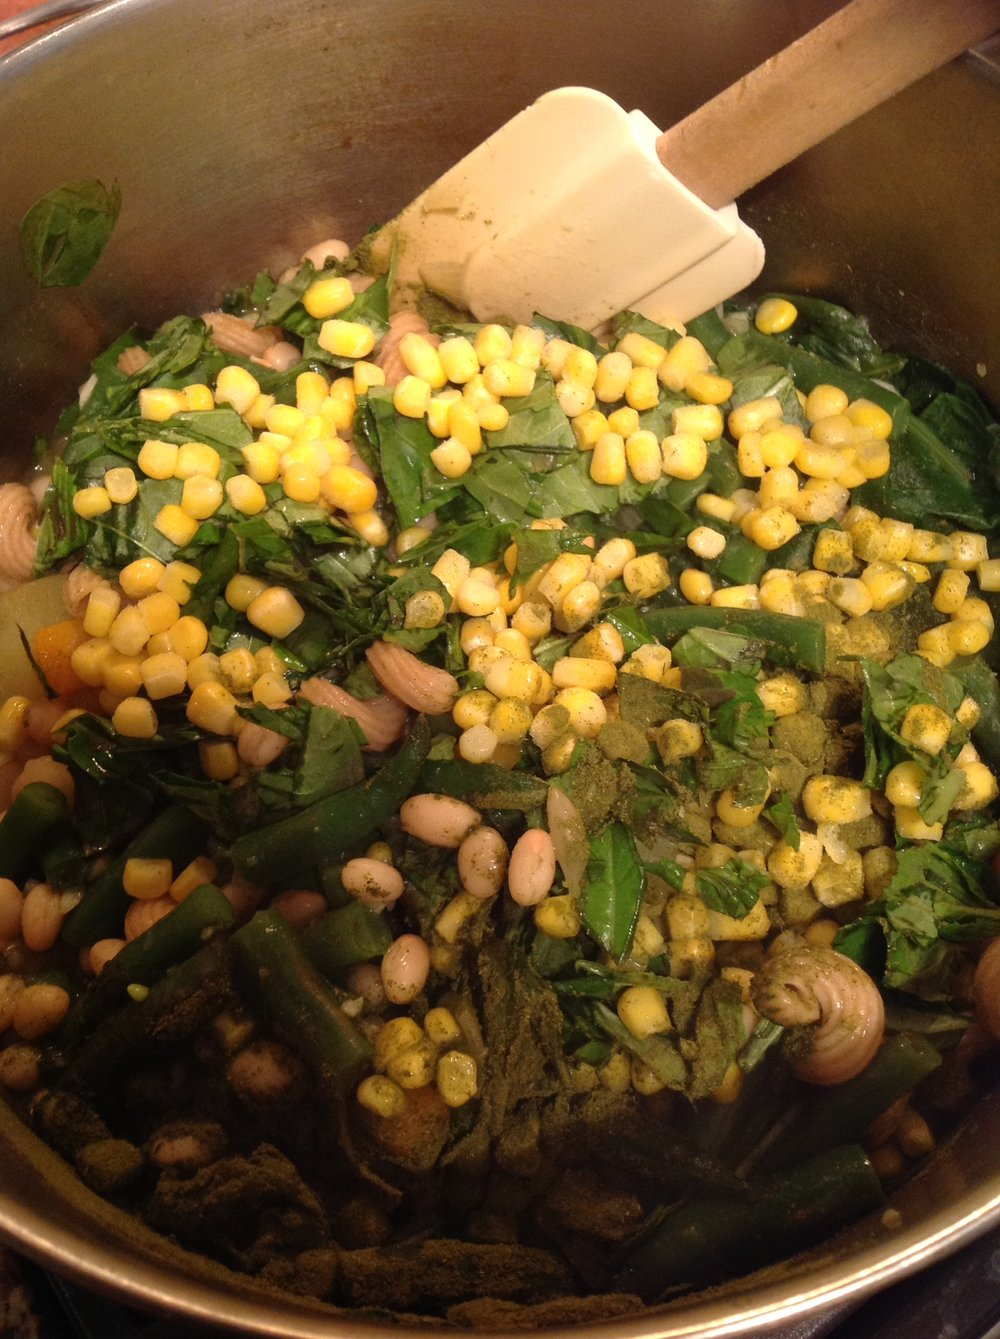 Chef's Healthy TIp: A colorful mix of beans, corn, spinach, and vegetables provide healthy fiber and vegan protein to this nutritious soup recipe